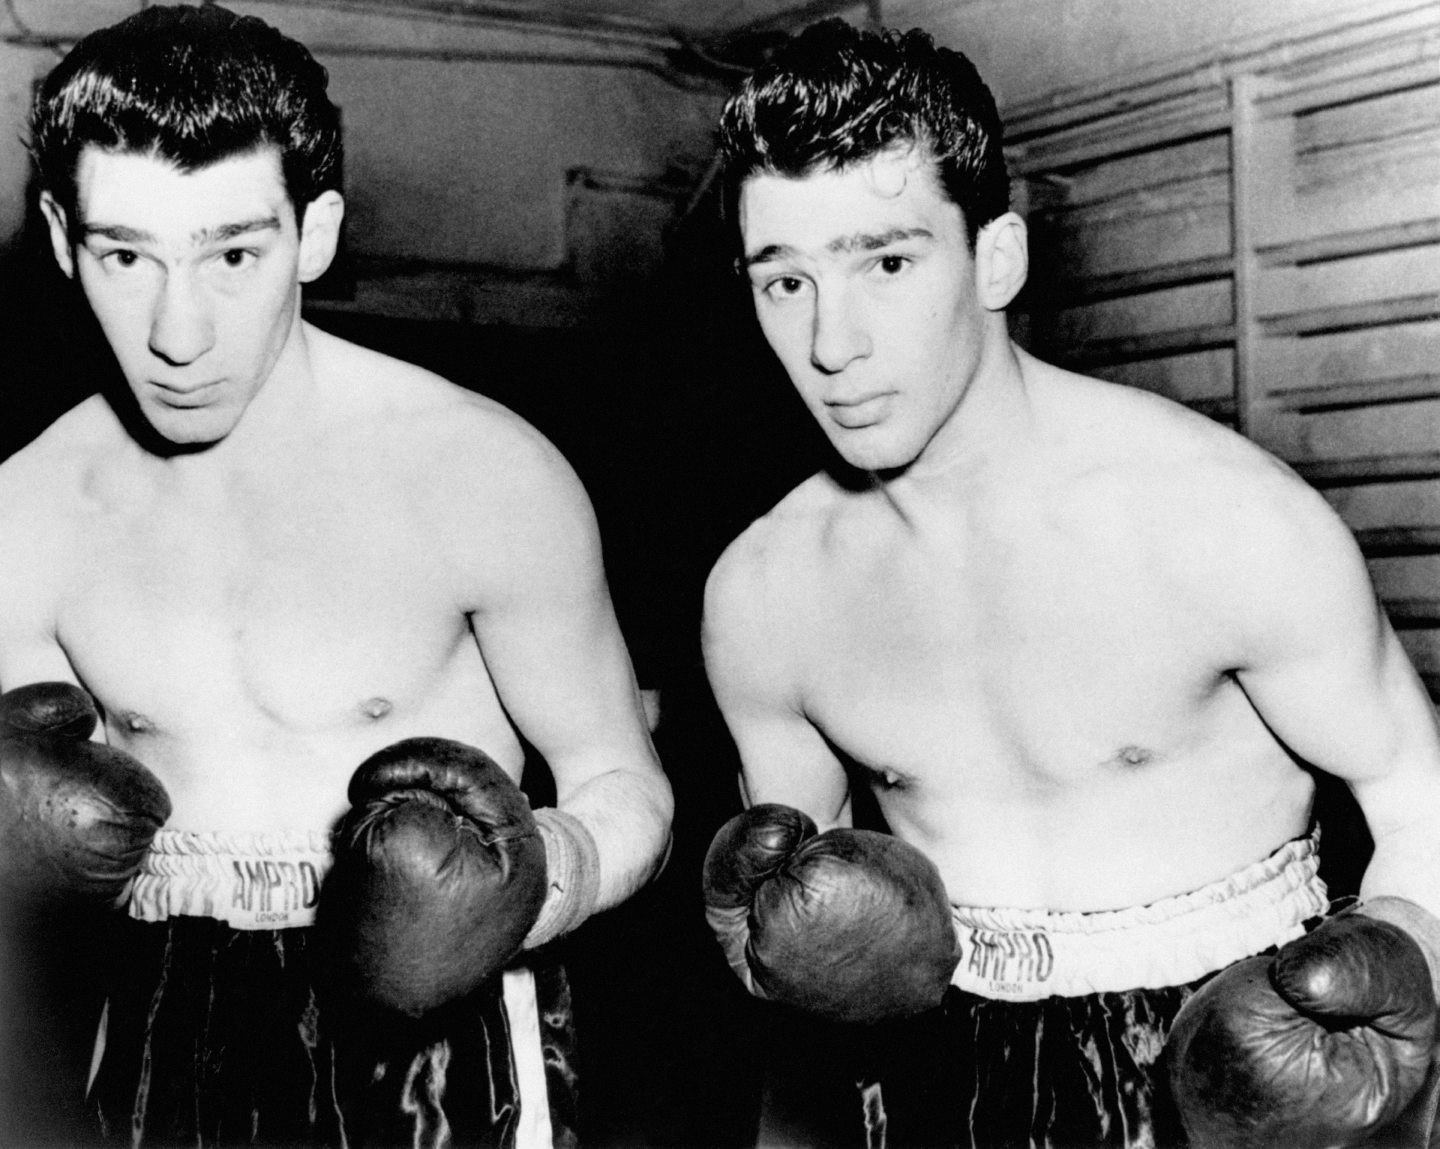 LORRAINE WILSON: Fred Dinenage and the Kray twins ruined my childhood memories